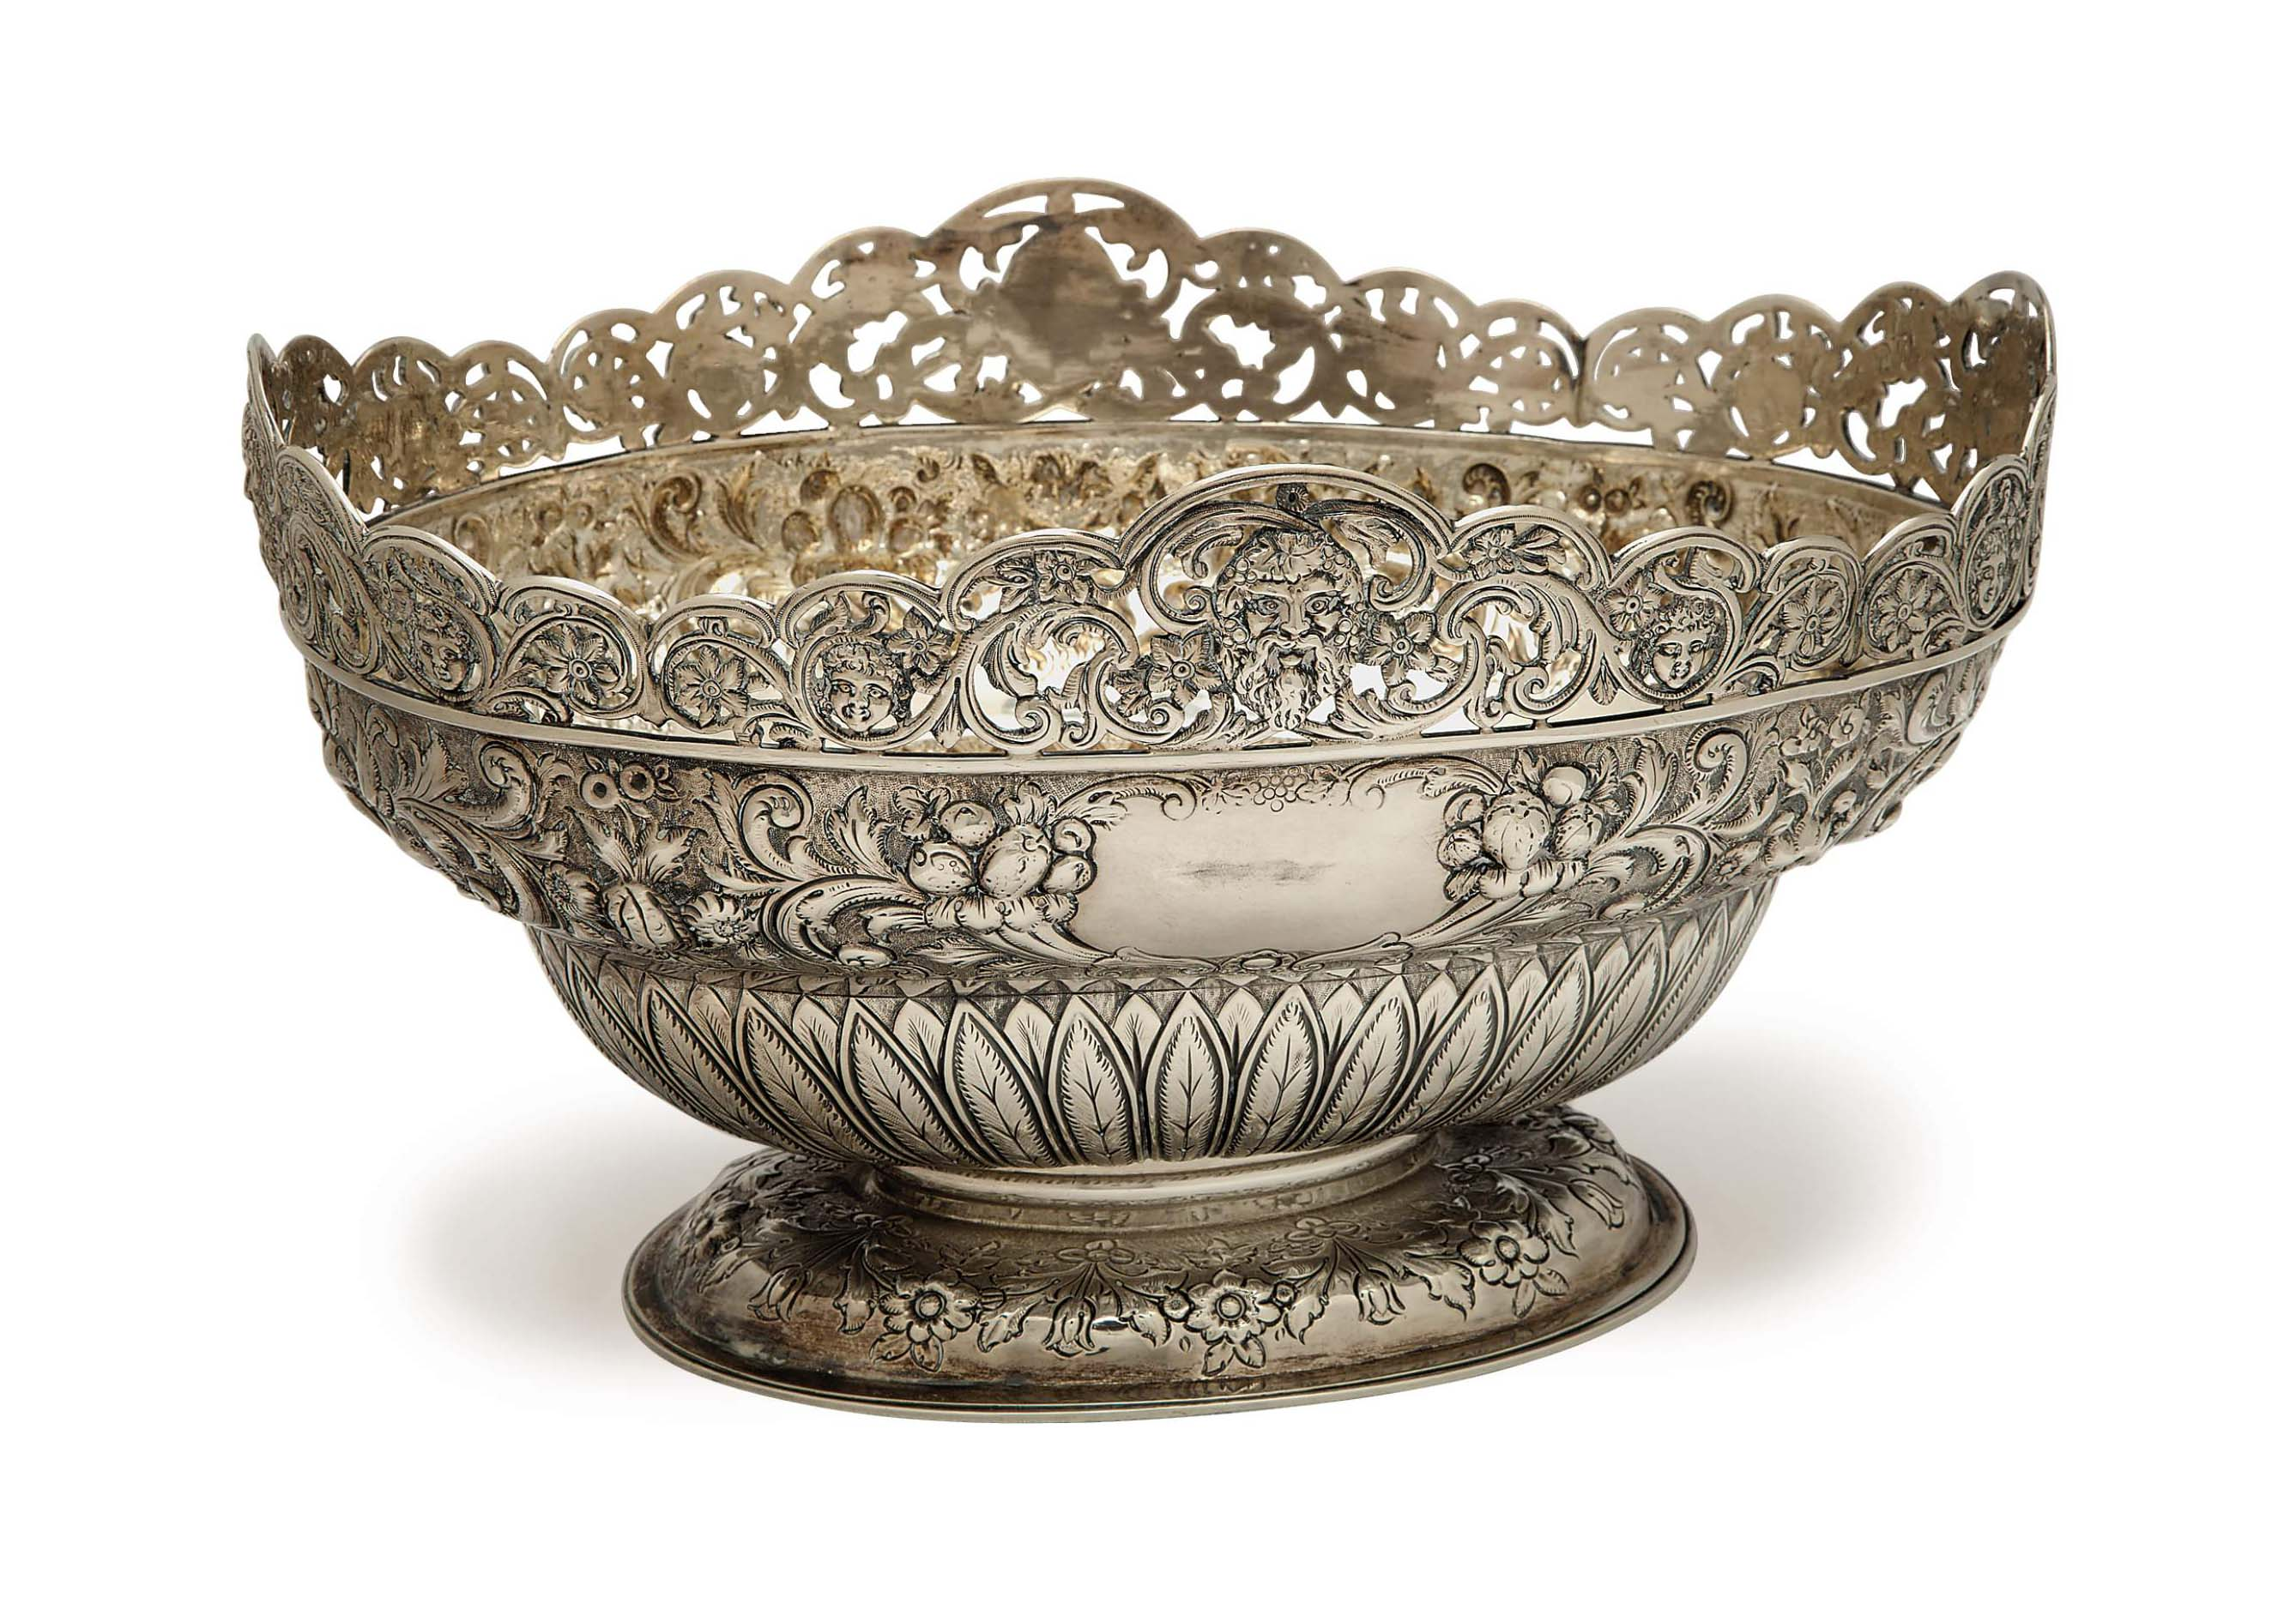 A REGENCY SILVER REPOUSSE RETICULATED OVAL CENTERBOWL,